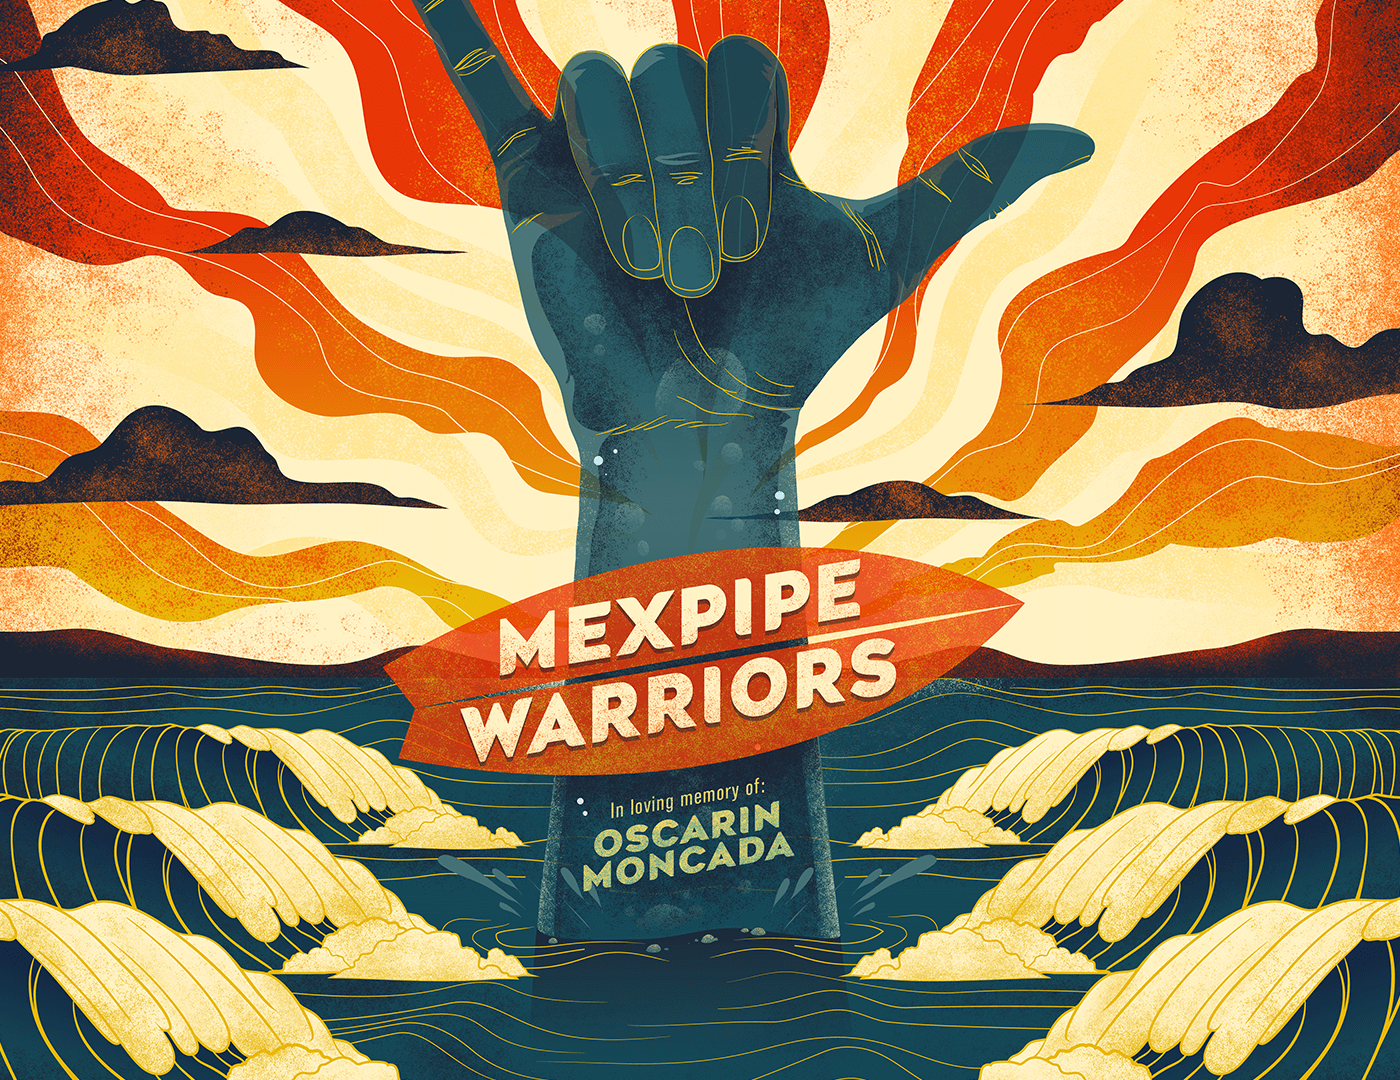 Insport - Mexpipe Warriors 2019